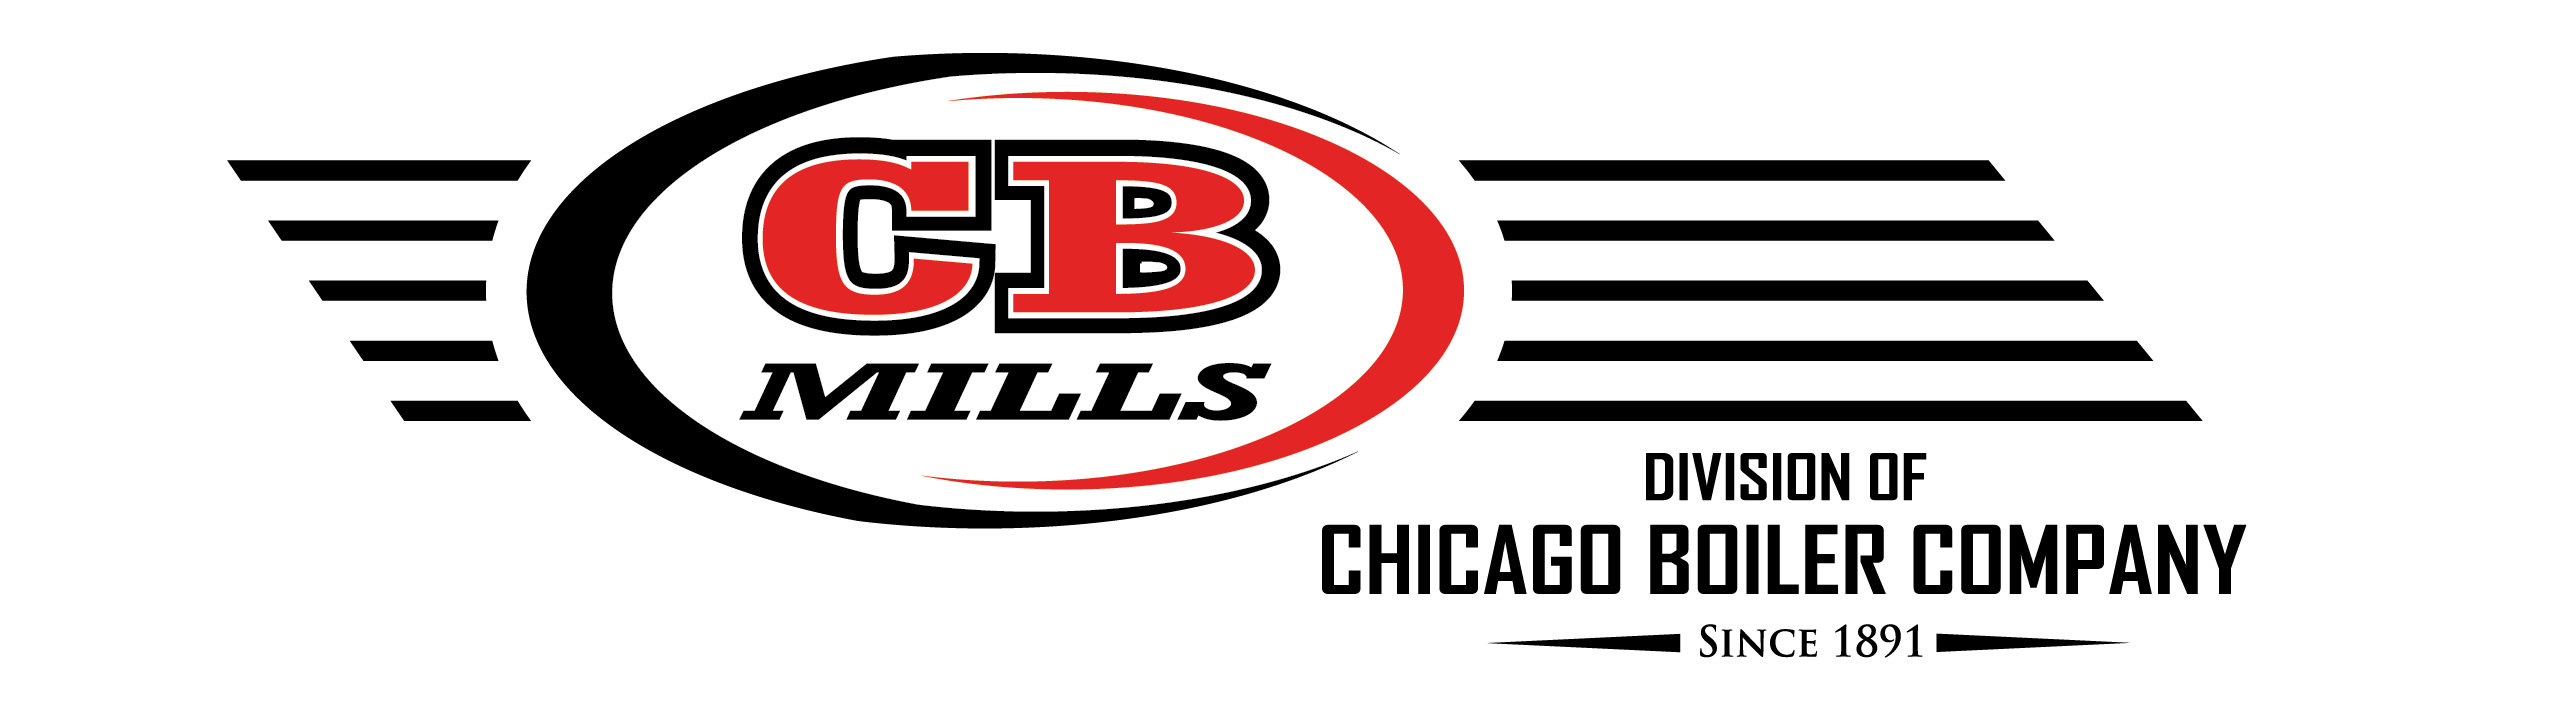 CB Mills, Div. Of Chicago Boiler Co. in Gurnee, IL. Storage tanks, pressure reactor vessels, metal welding clamps, mixers, solvent recovery stills, drum washers, media mills, tank washers & liquid dispensing machines.